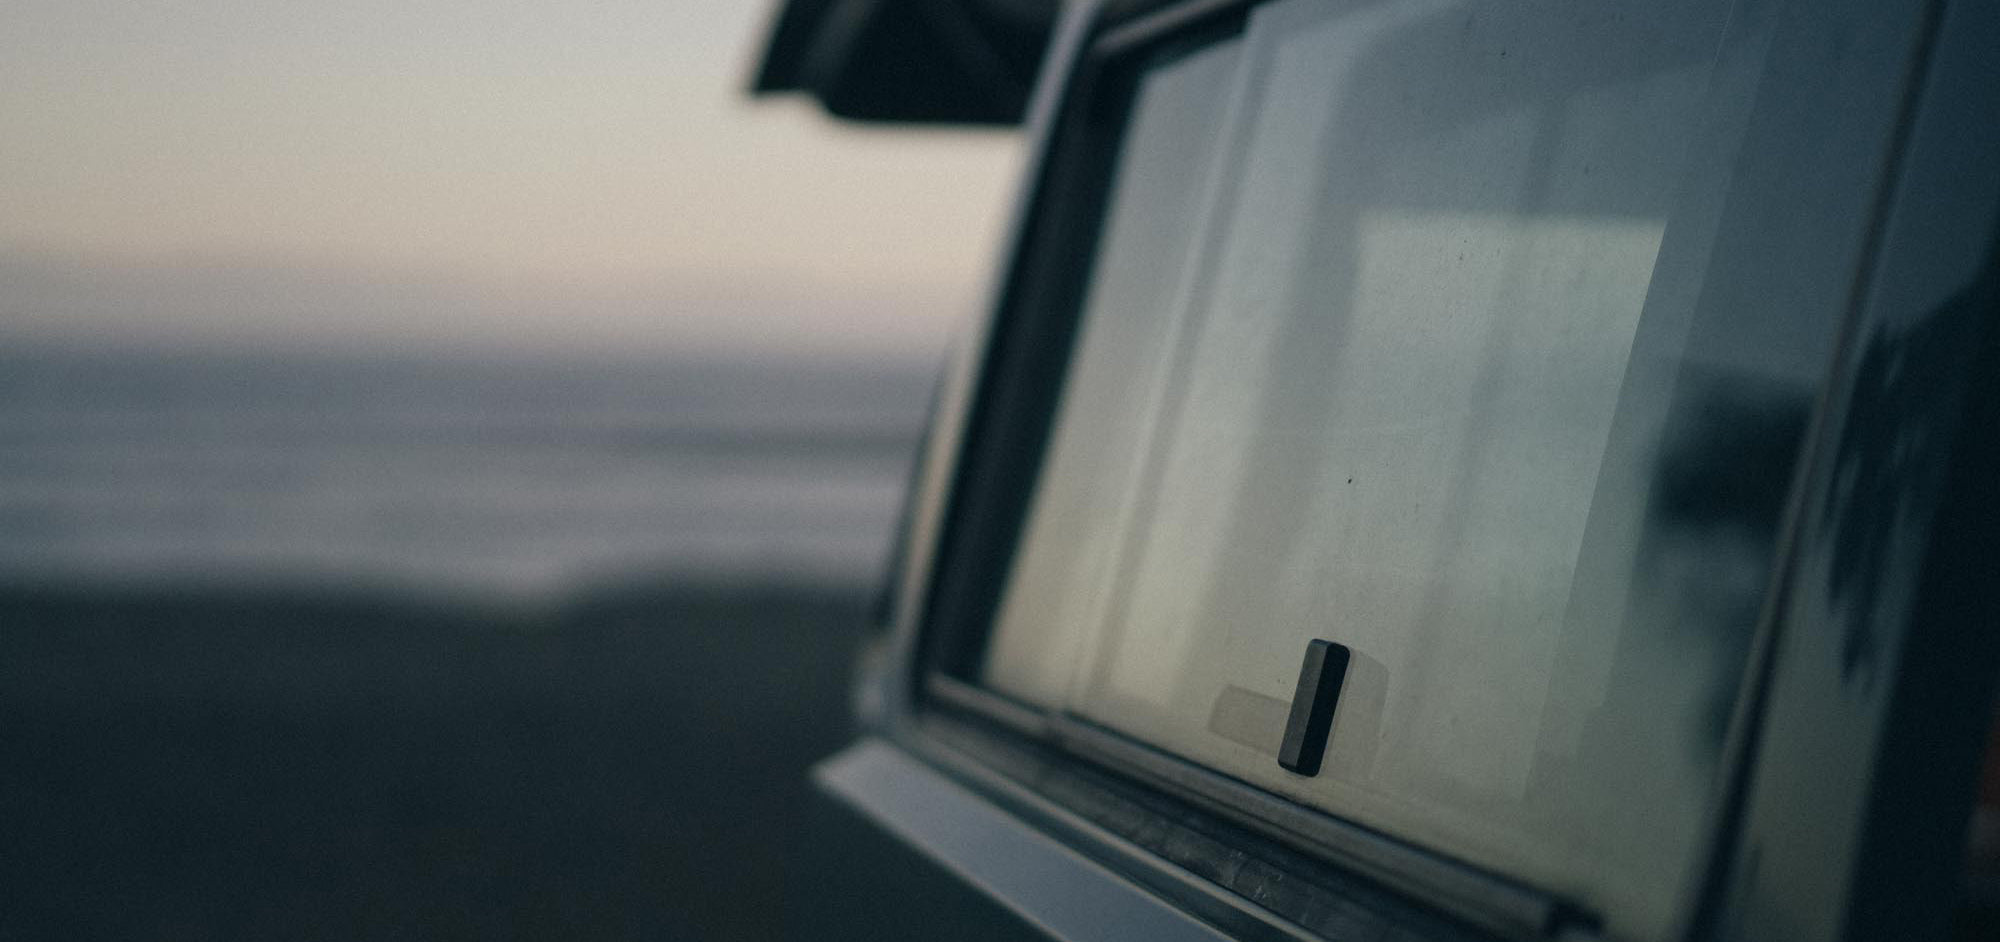 A dusky blue-hour sky reflects off the rear window of a classic VW Westy campervan